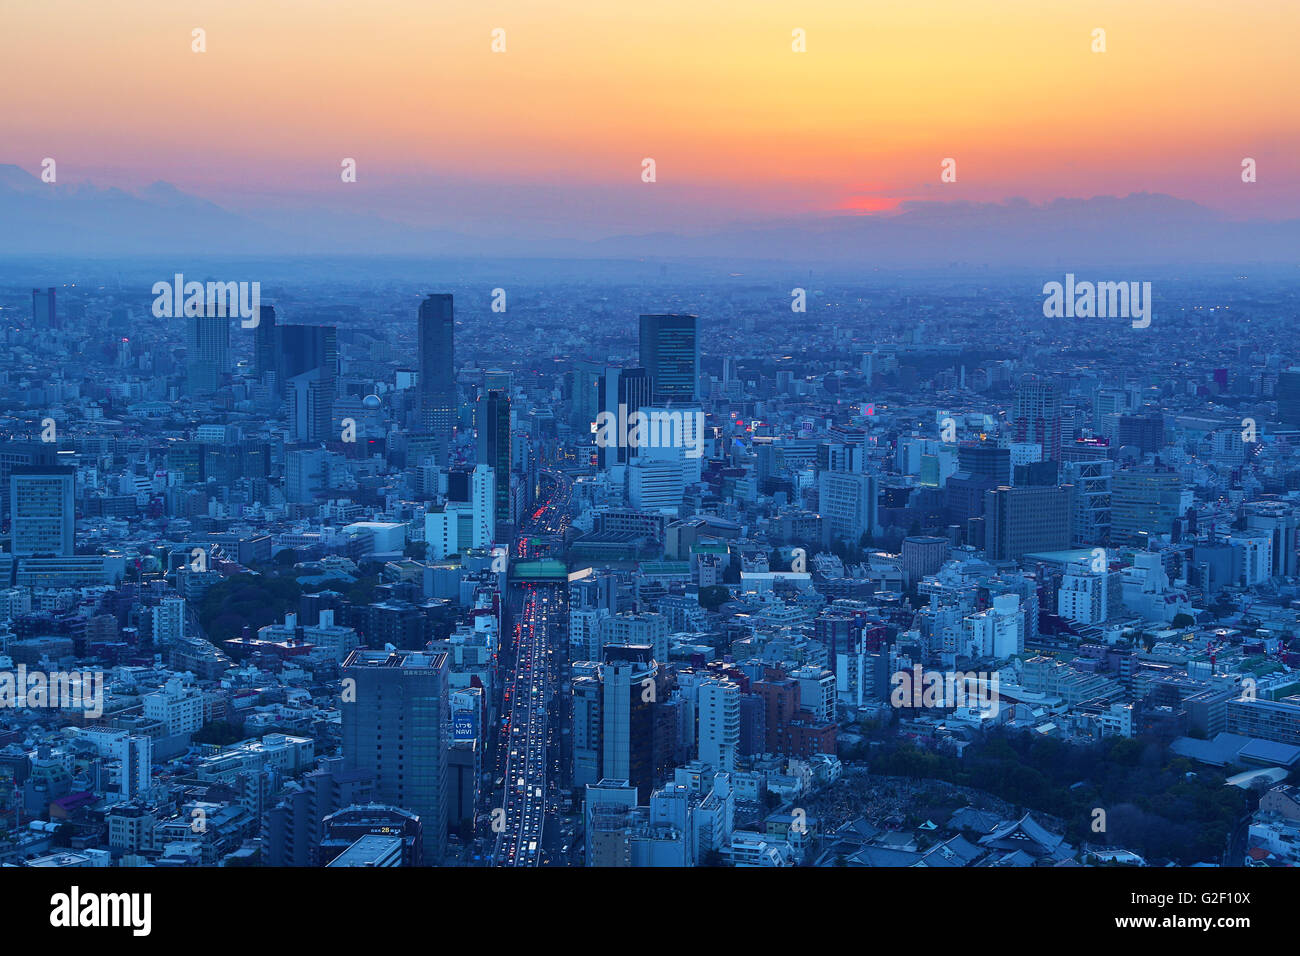 General city skyline sunset view of Tokyo, Japan - Stock Image